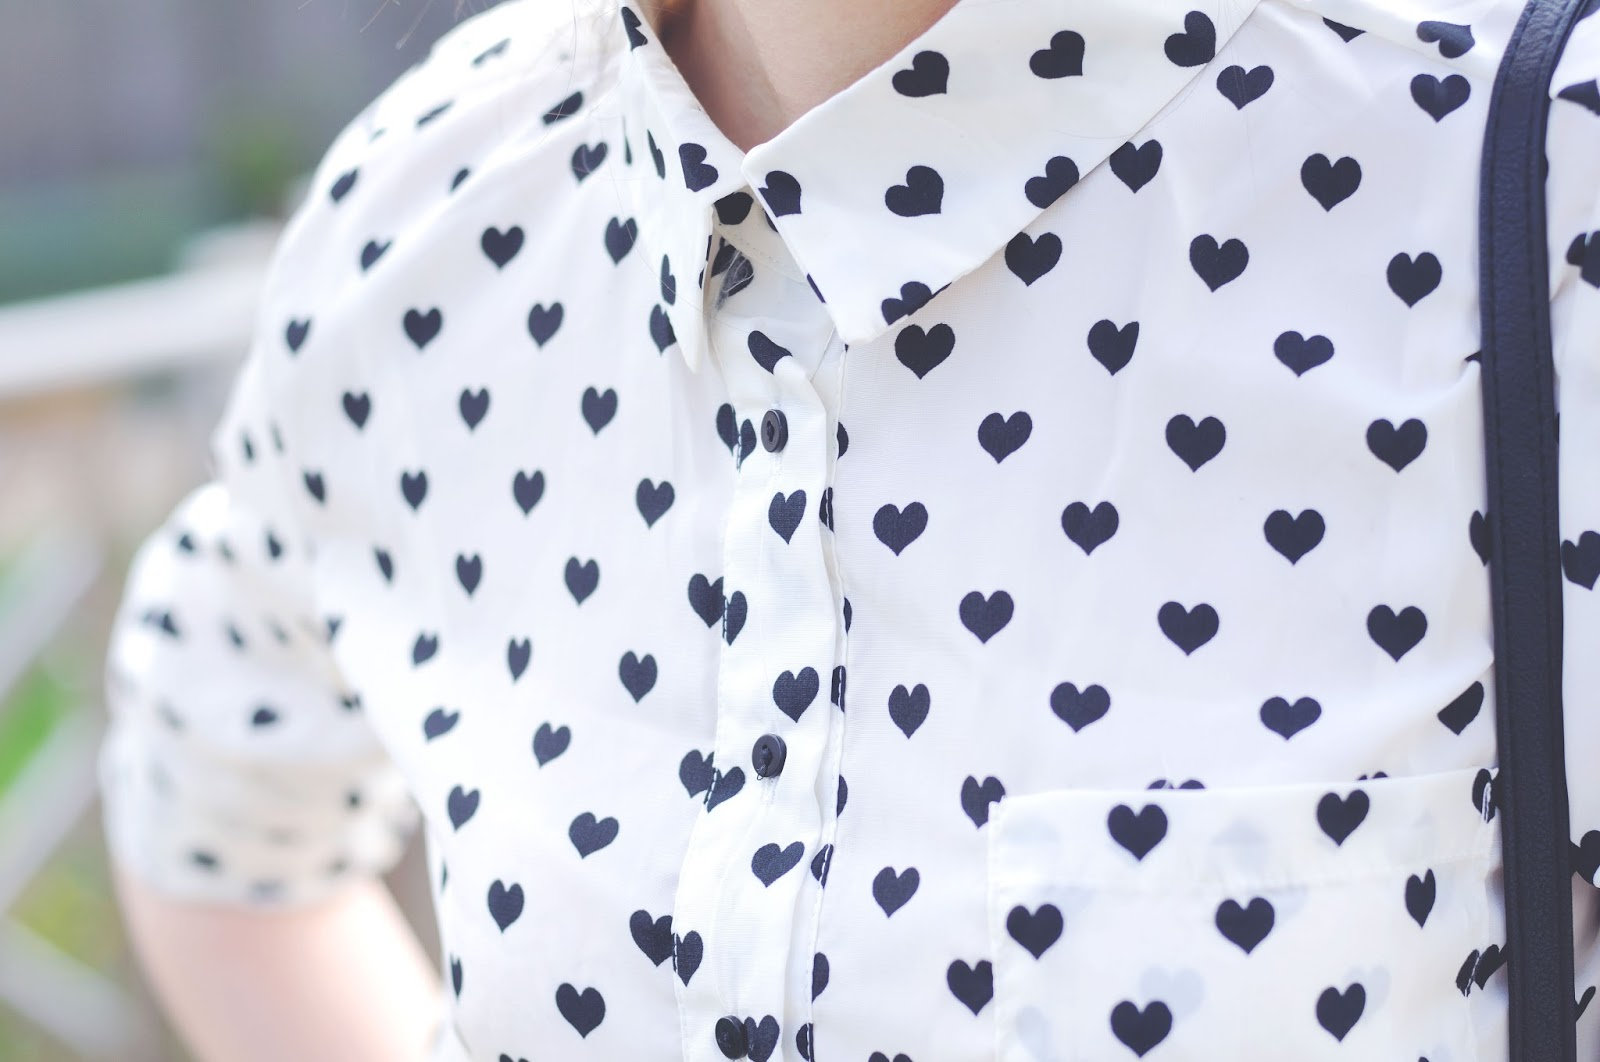 Heart print blouse, how to wear monochrome